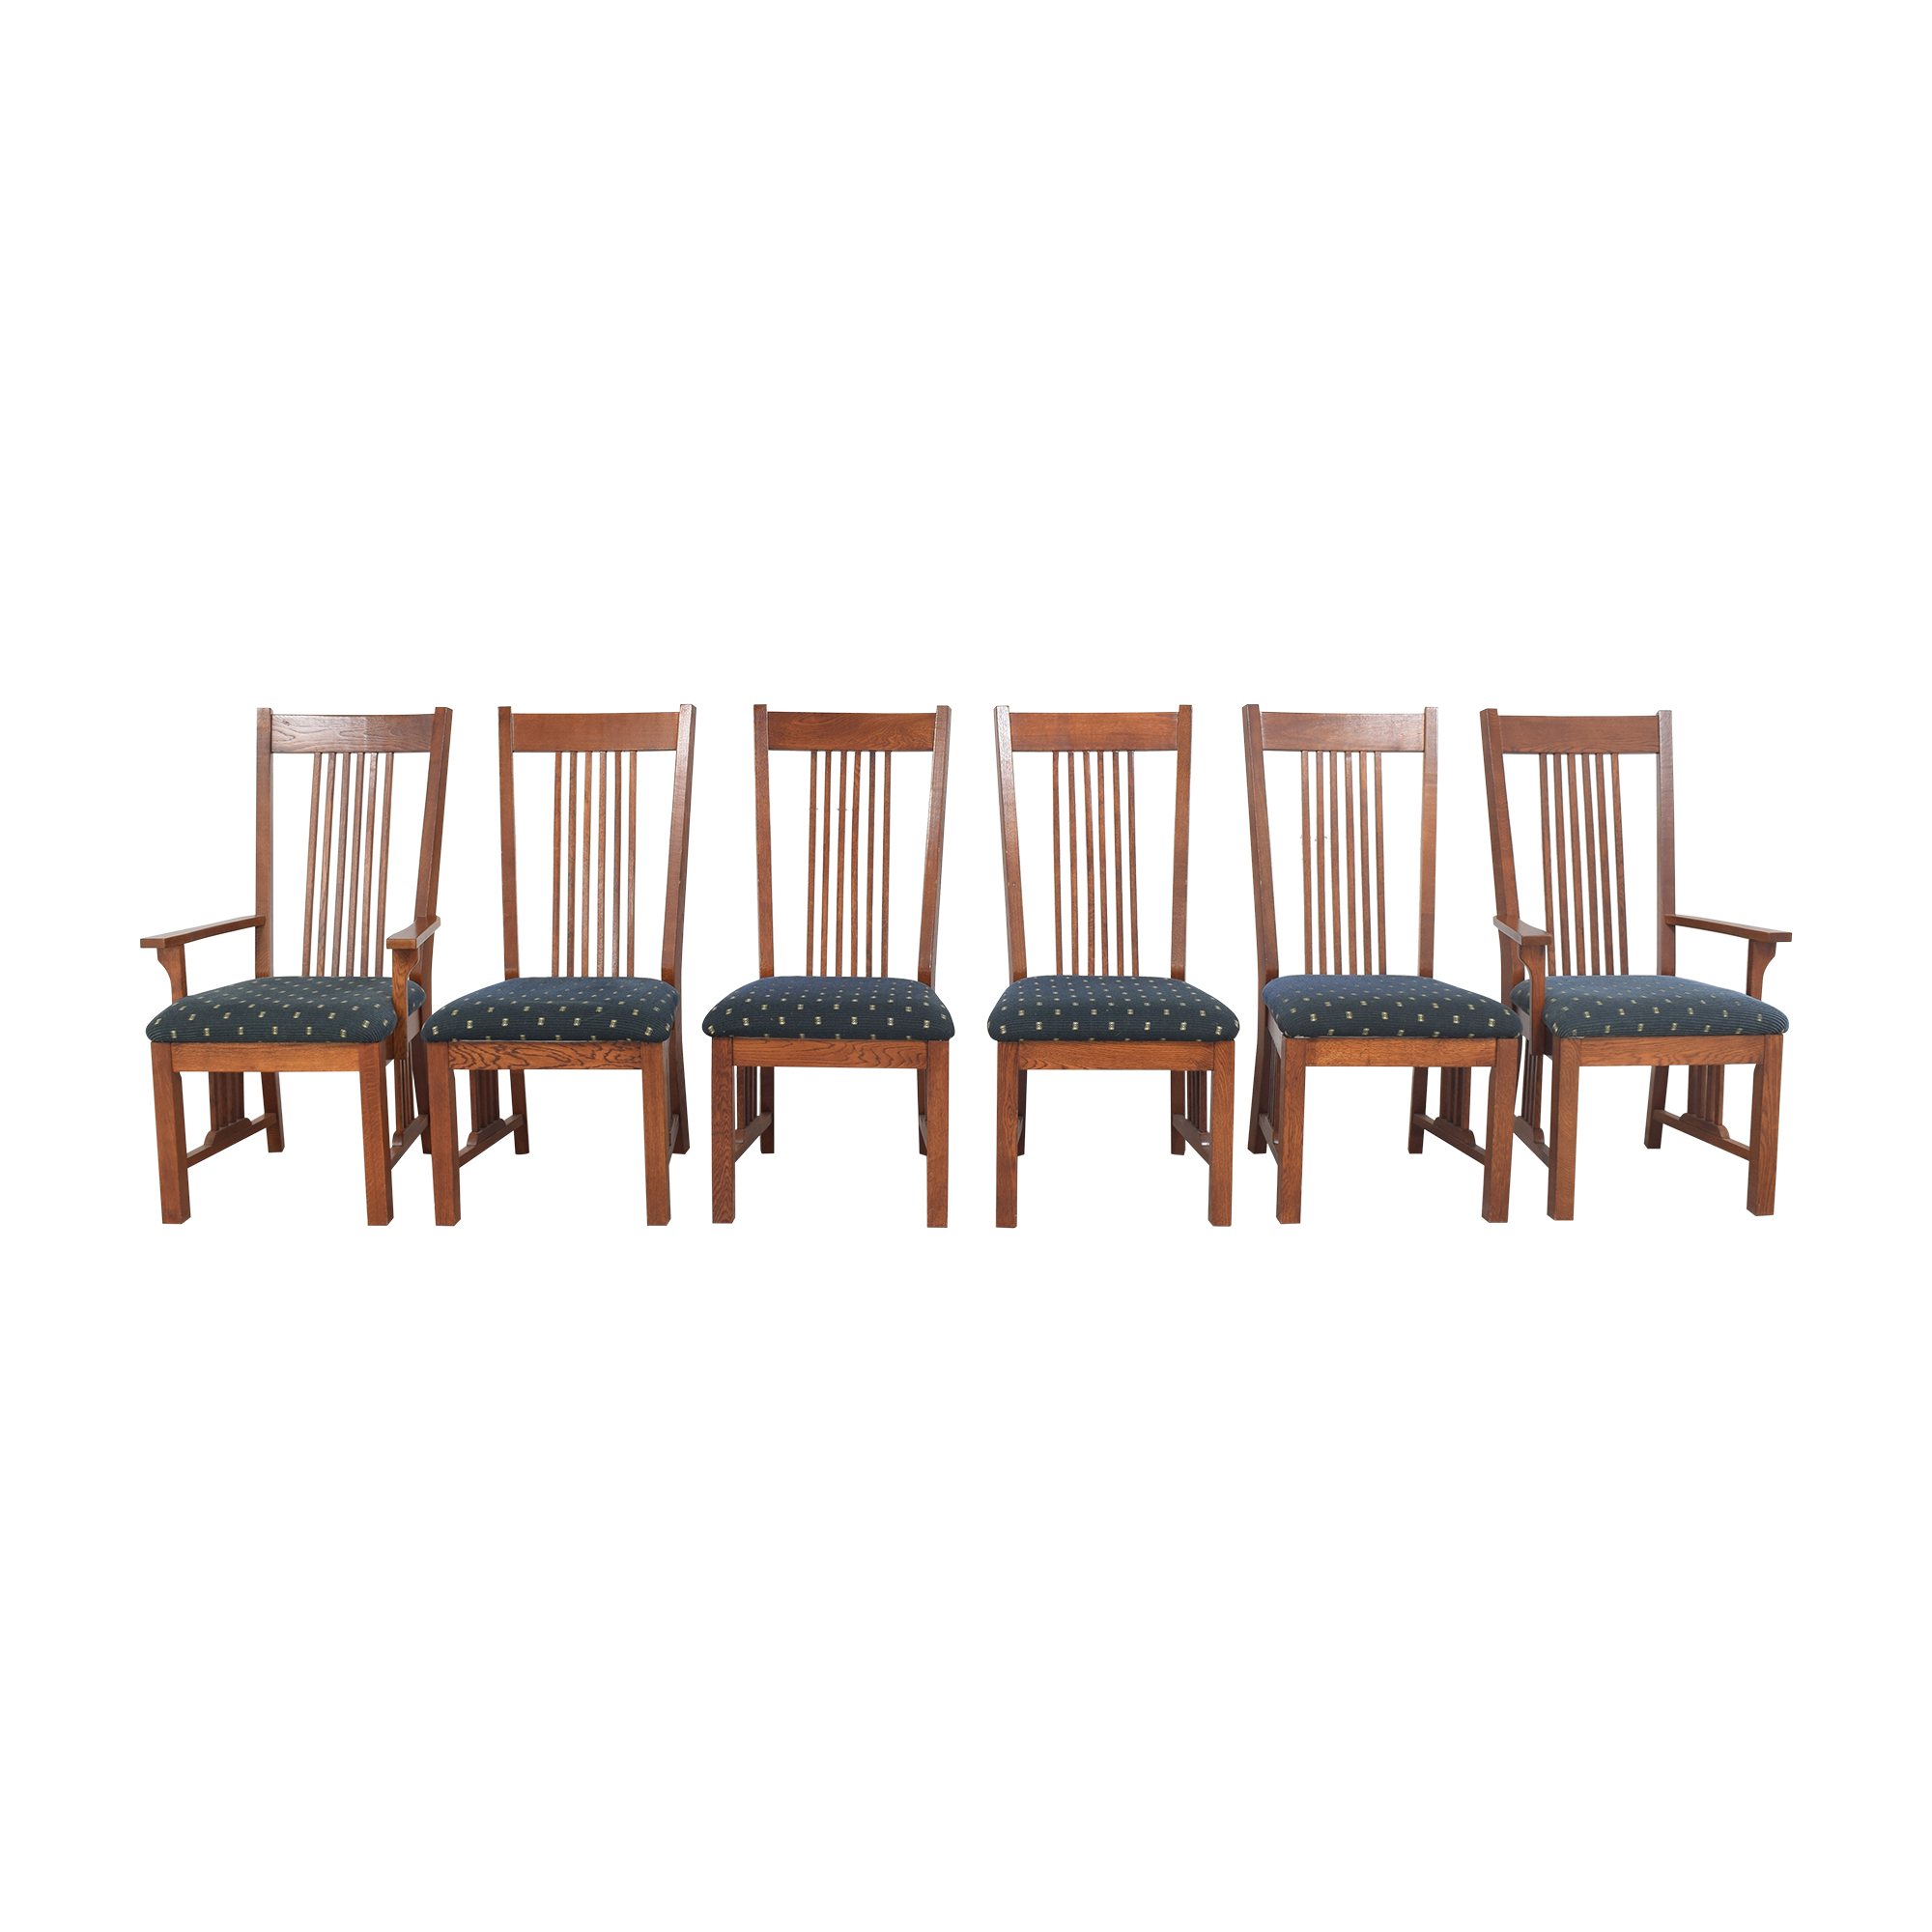 Mission-Style Dining Chairs / Chairs